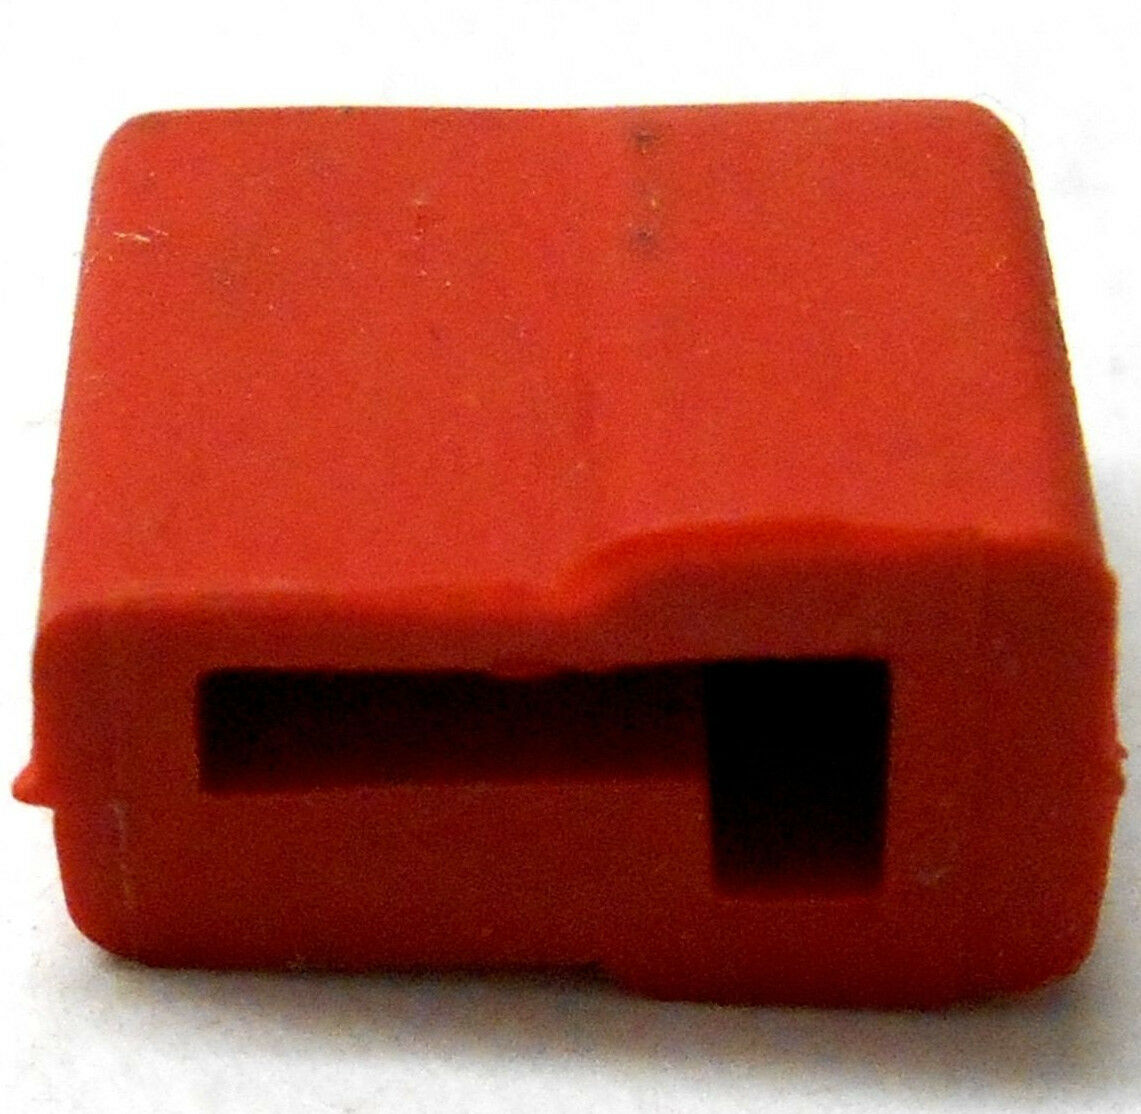 C0122 RC Battery T-Plug Rubber Cap Hat Cover x 5 Red